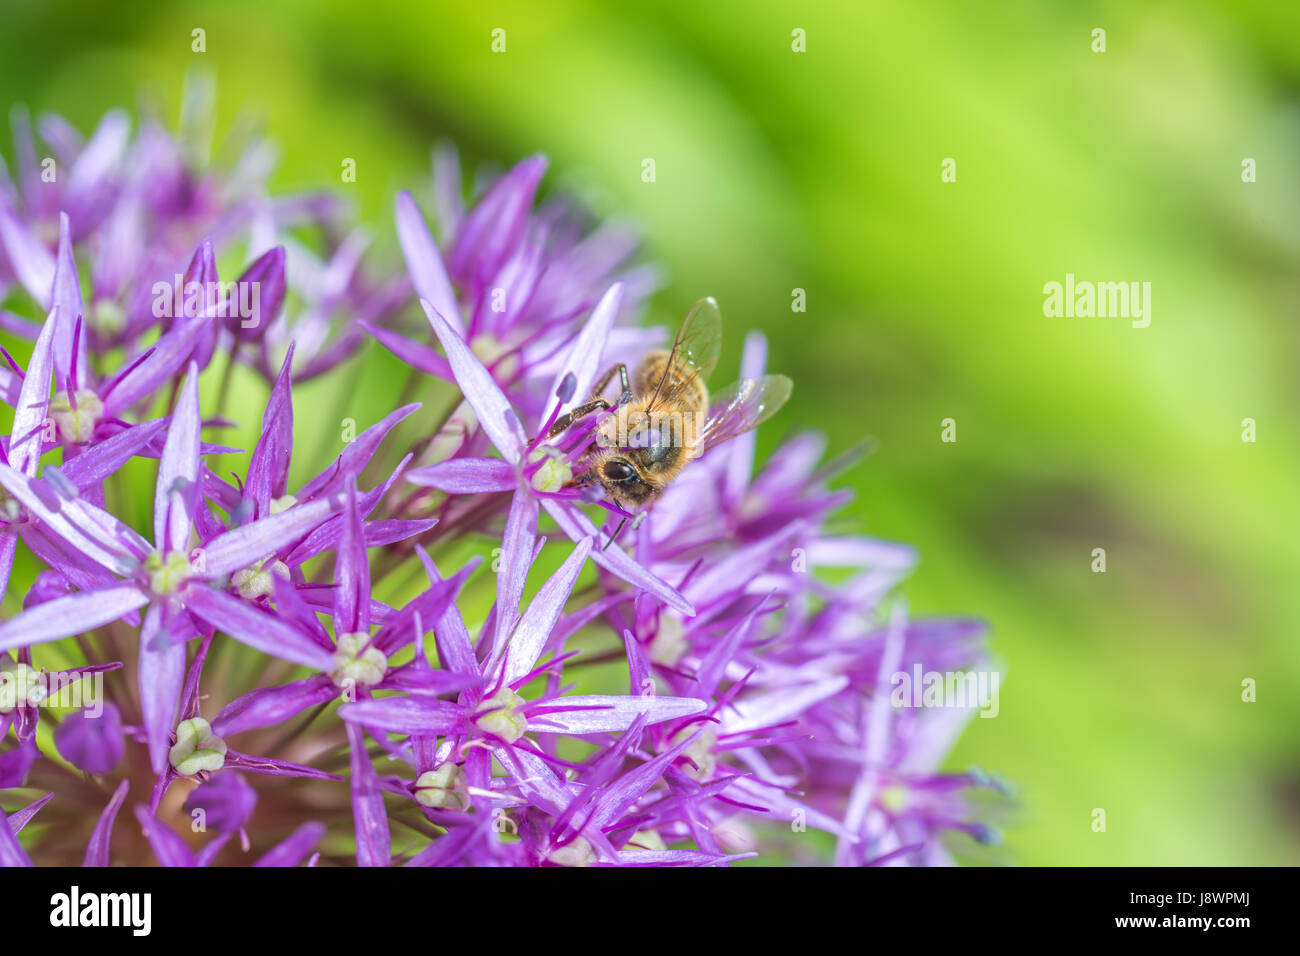 Close up of a bee on a purple allium bulbs flower - Stock Image